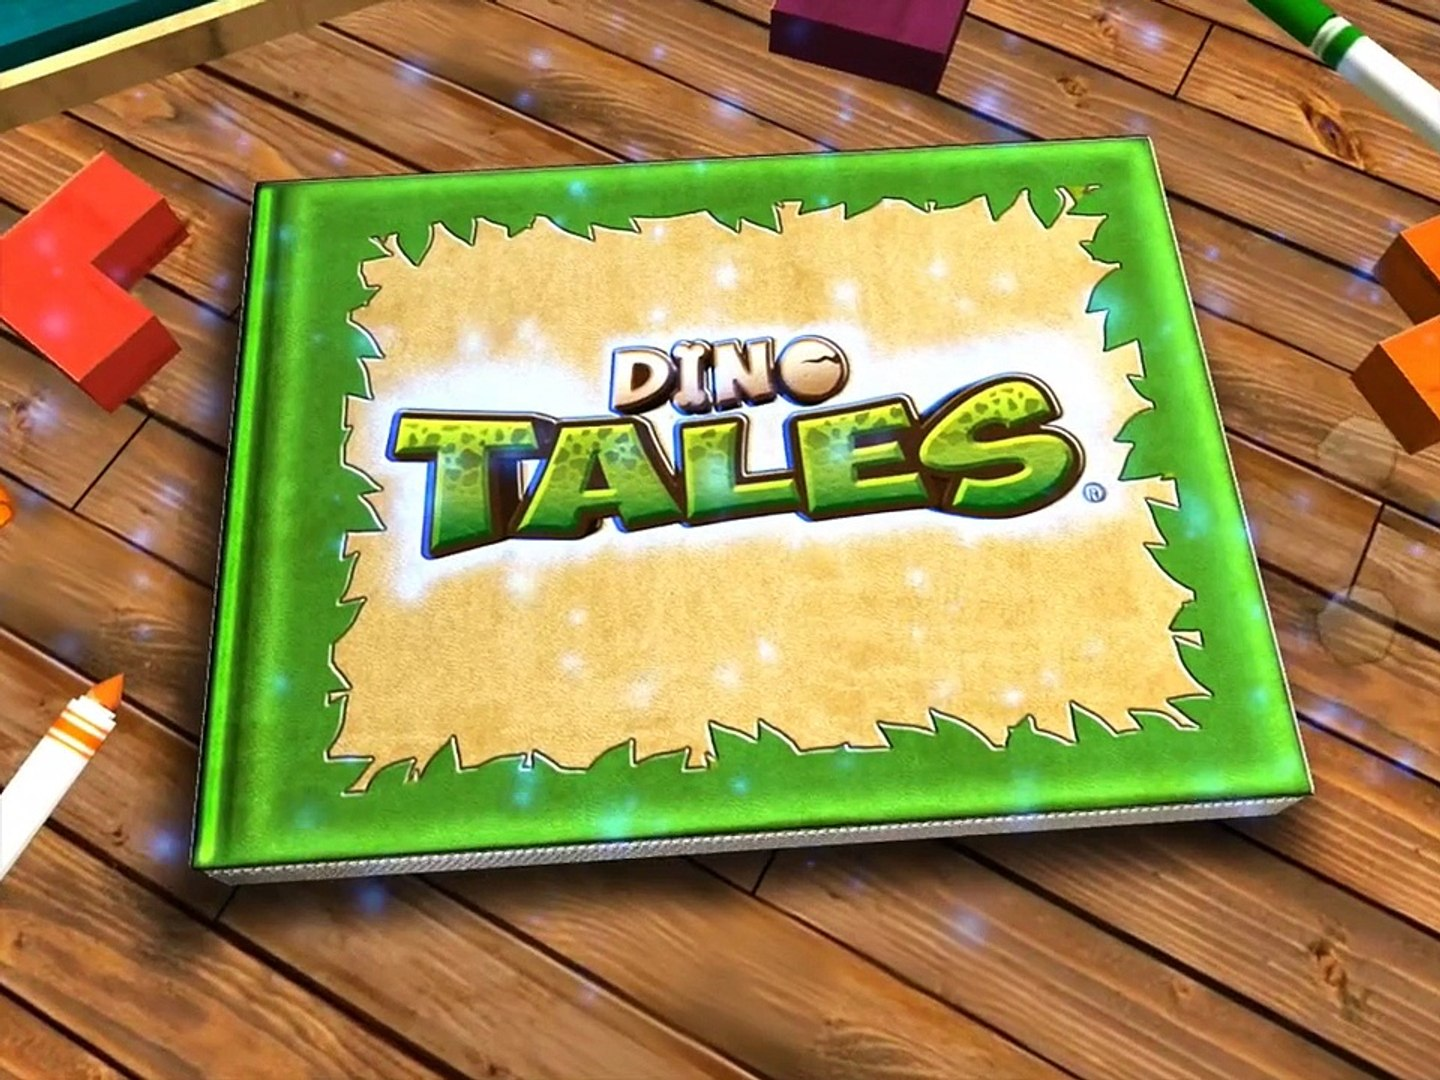 DINO TALES Story Trailer